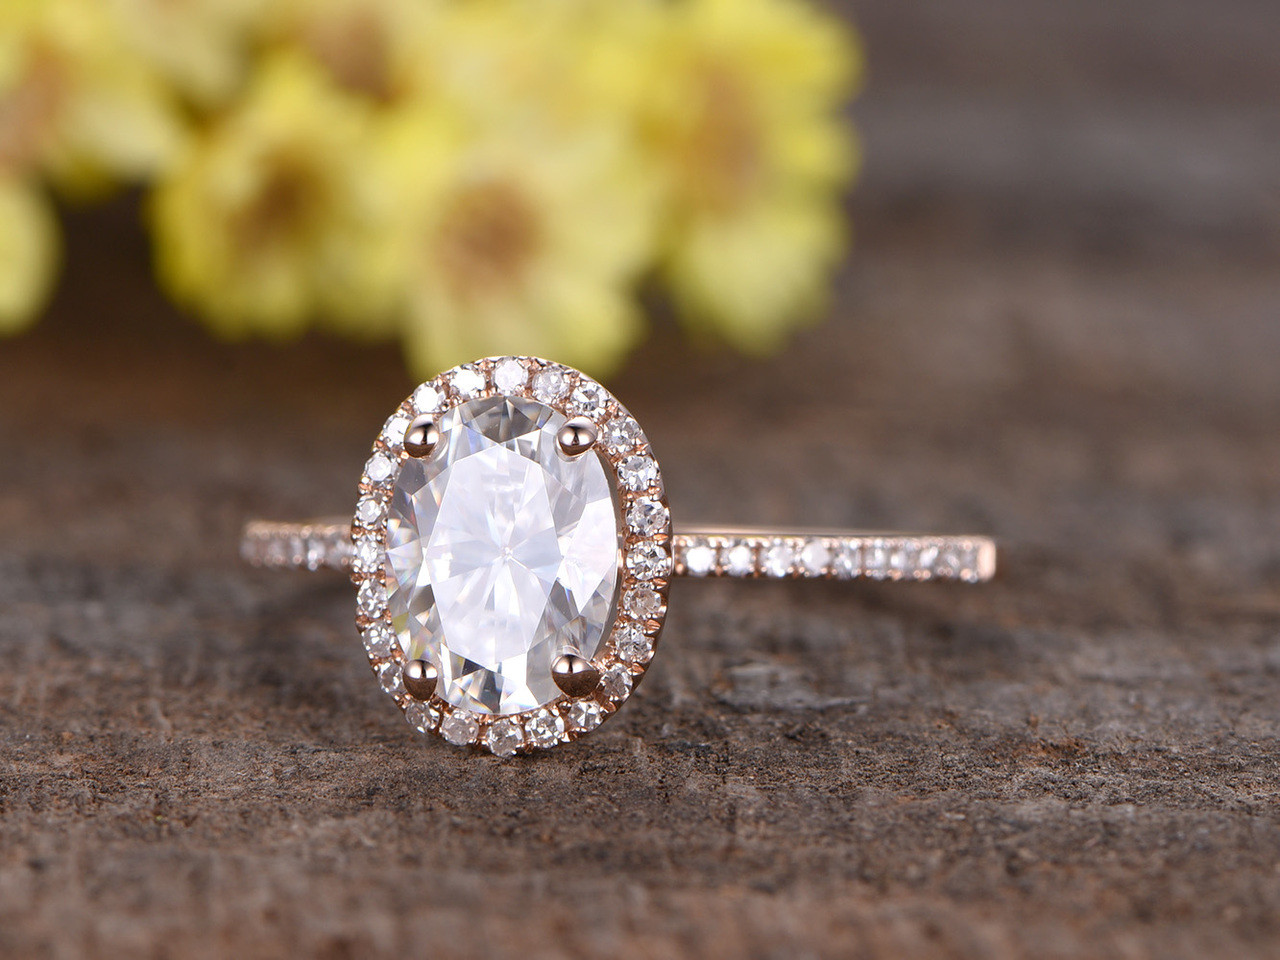 brides inside the oval rings weddings embrace gold clark trend engagement wedding halo ring real white from opulent steele jewelry goodger news diamond